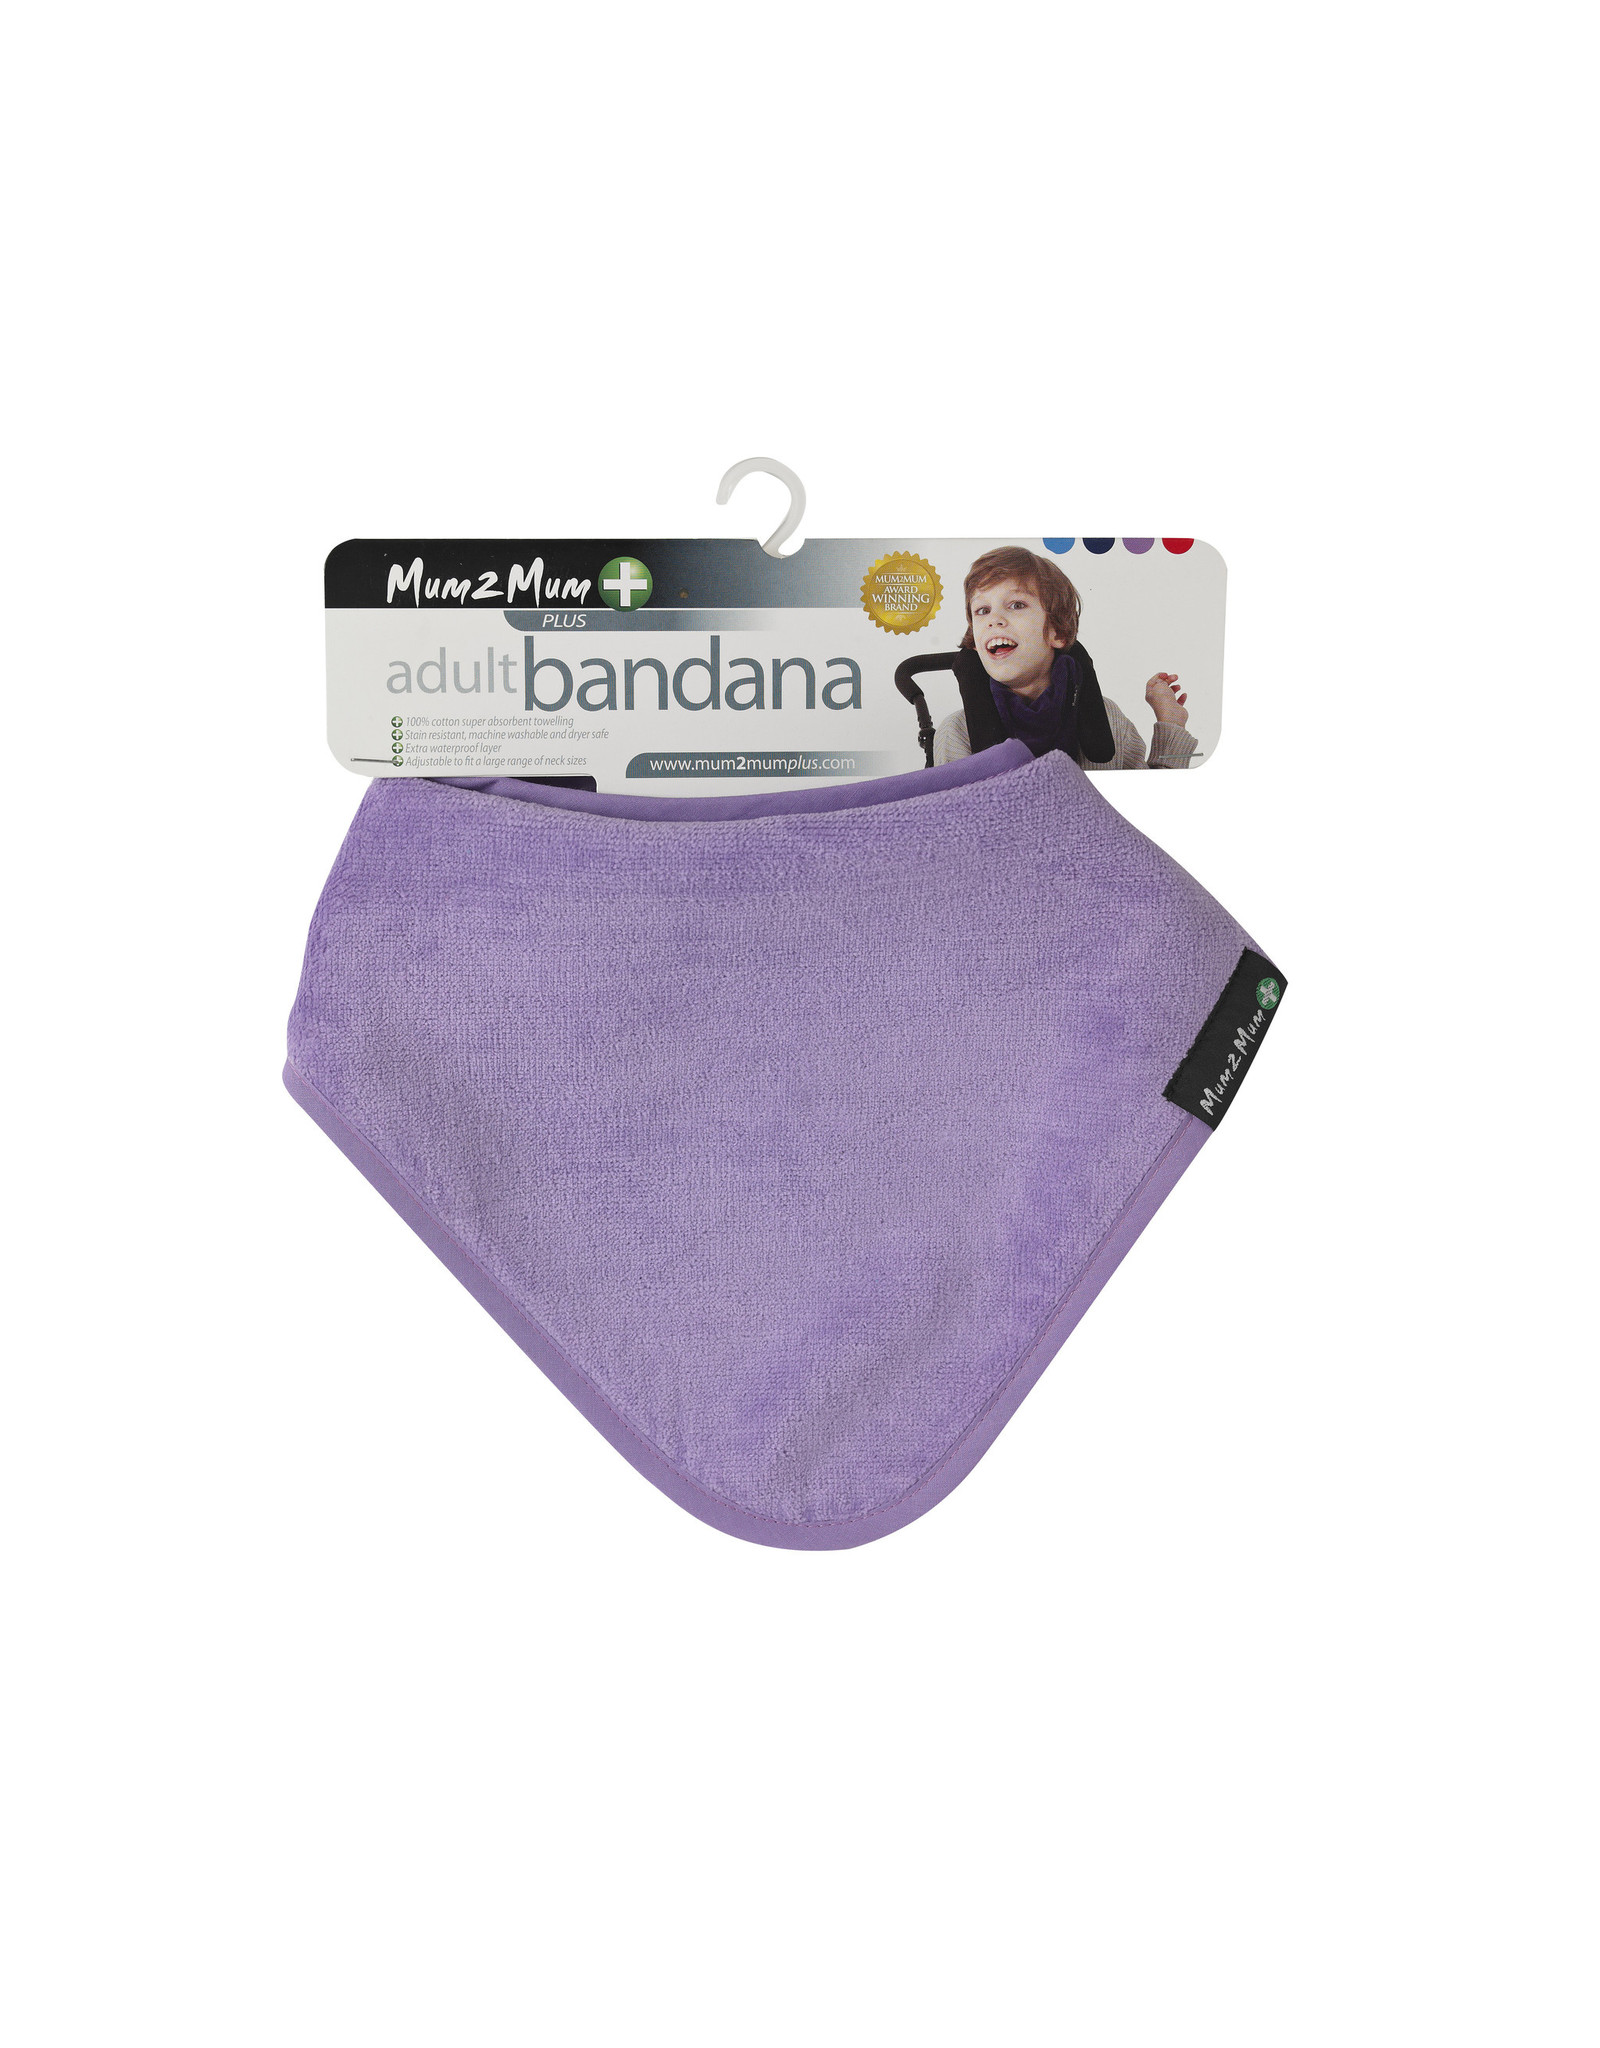 Mum2Mum Mum2Mum Plus Range Adult Bandana Bib Purple